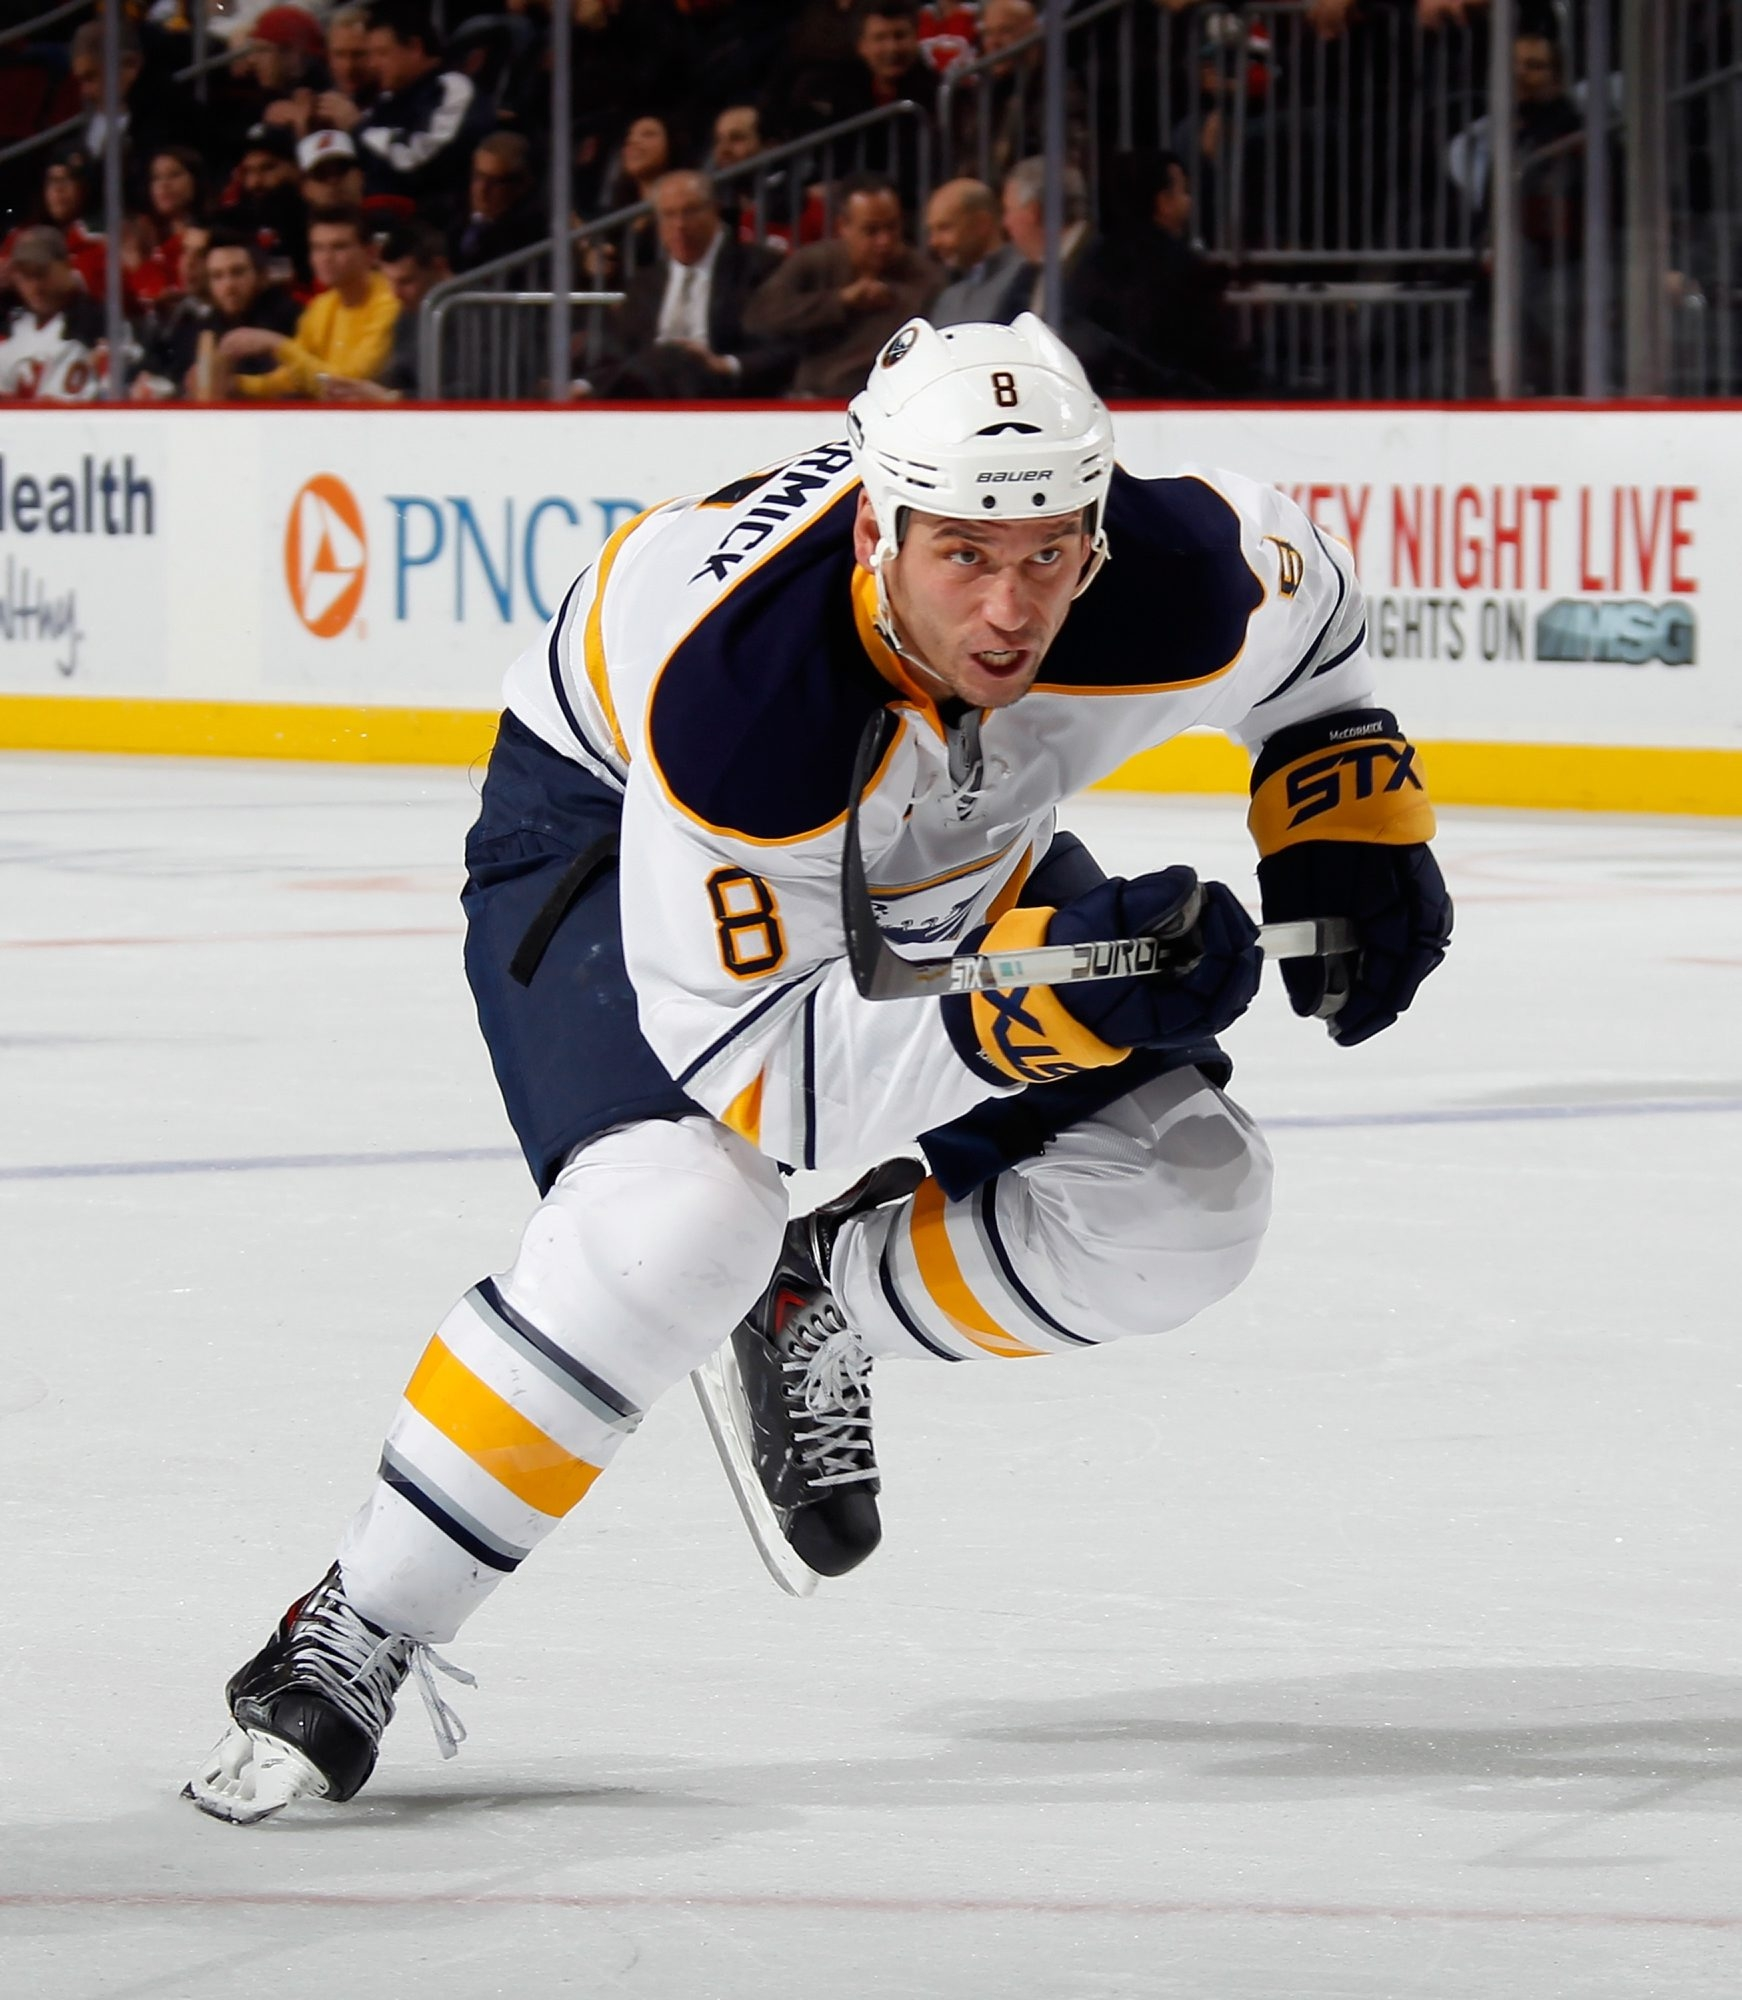 Cody McCormick's last game for the Sabres was Jan. 9 in Tampa Bay.  He's missed two months of last season and all of this one.